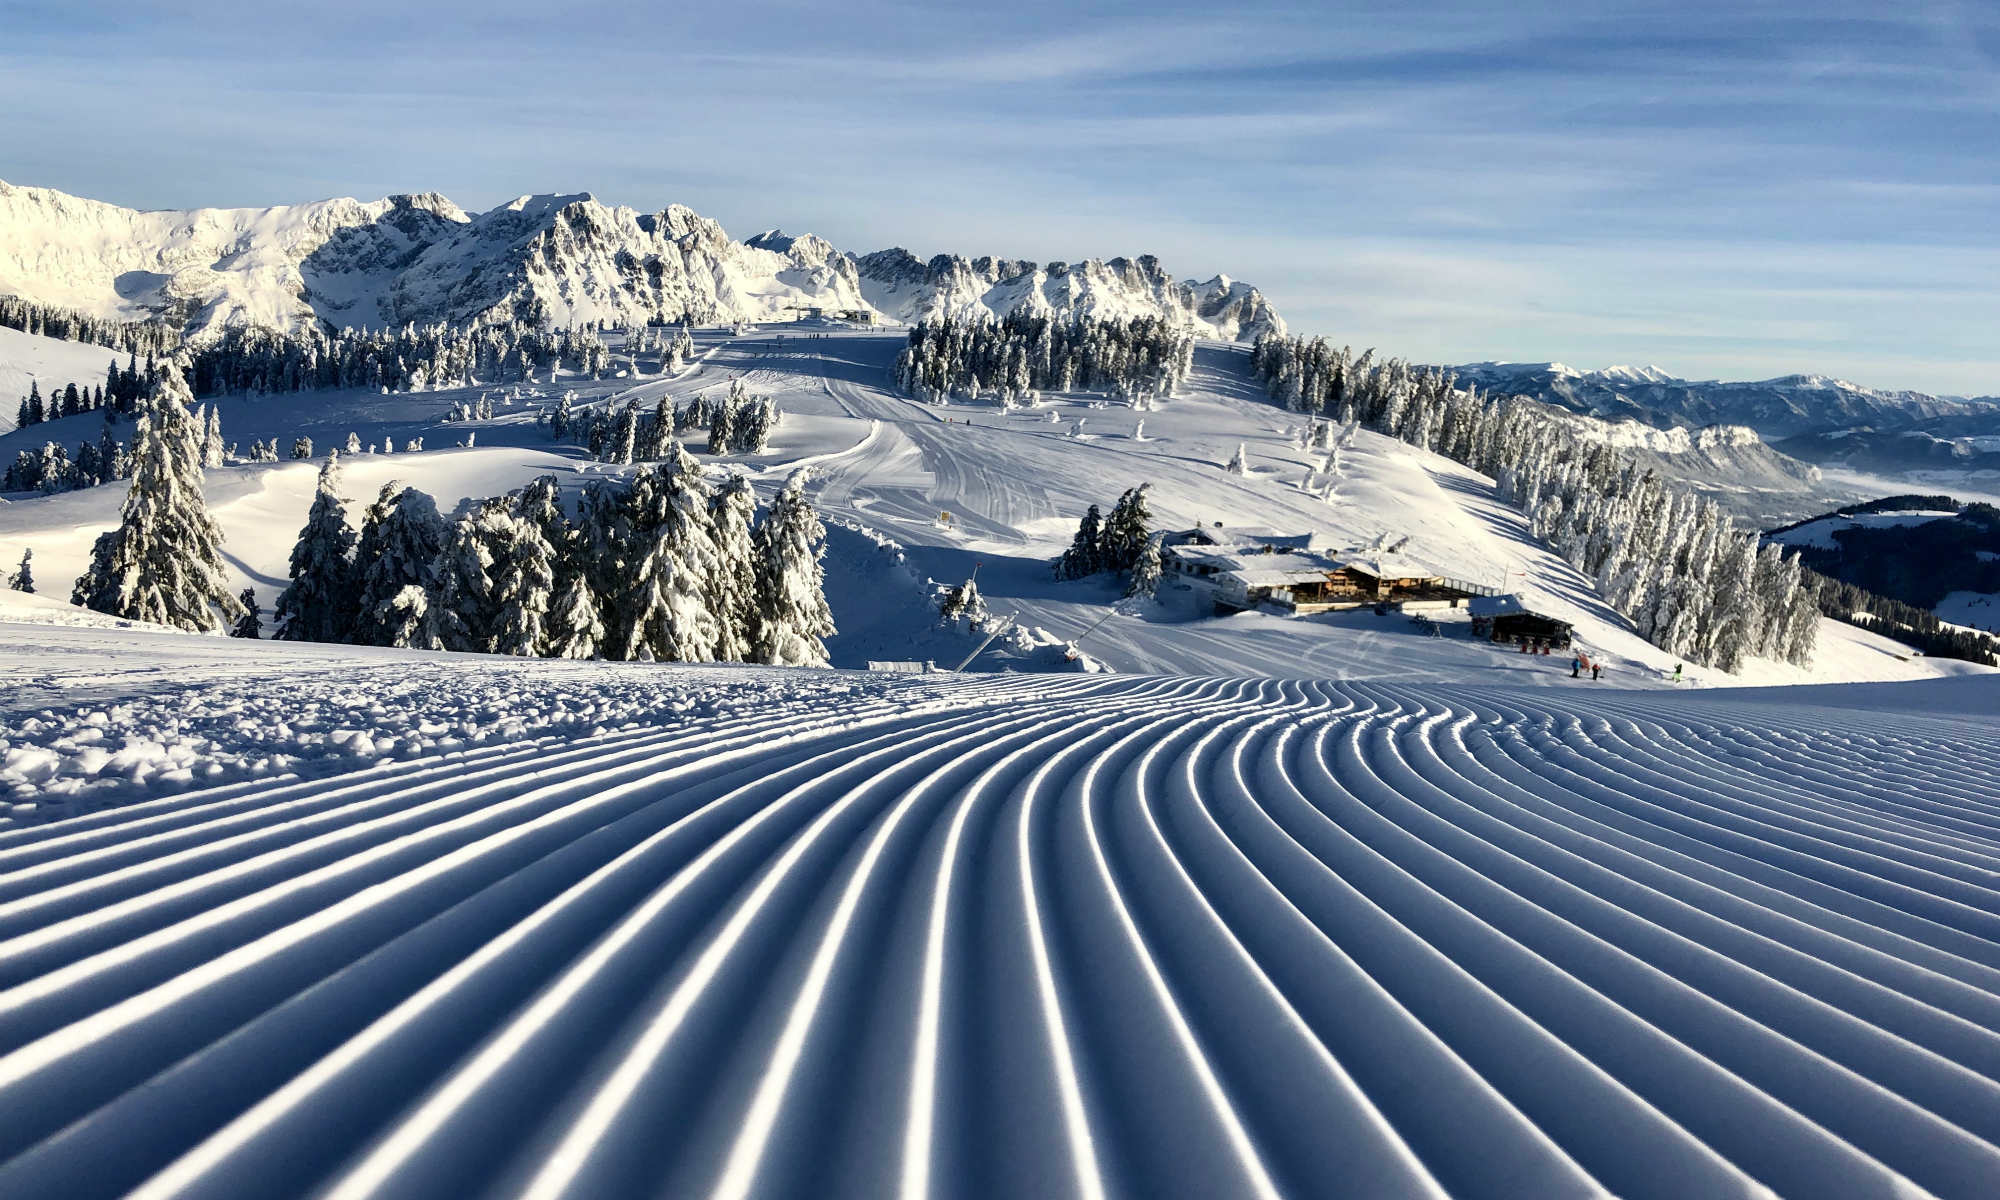 View over perfectly-groomed ski slopes at Söll ski resort.